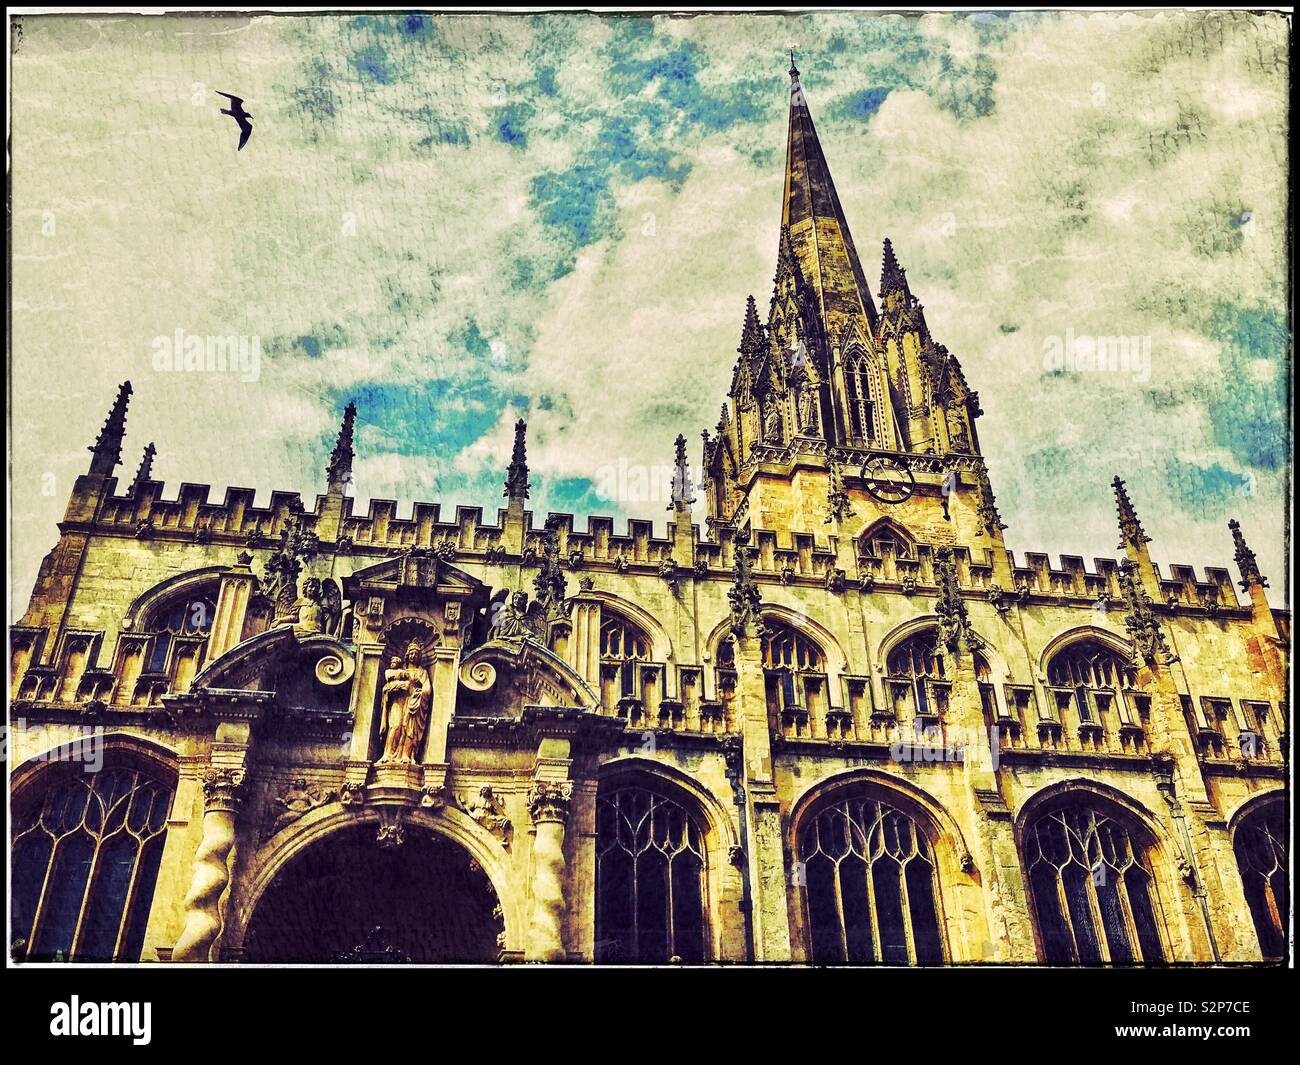 A retro effect photo of The University Church Of St. Mary the Virgin in Oxford, England. This Parish Church is an integral part of the University of Oxford. Photo © COLIN HOSKINS. - Stock Image